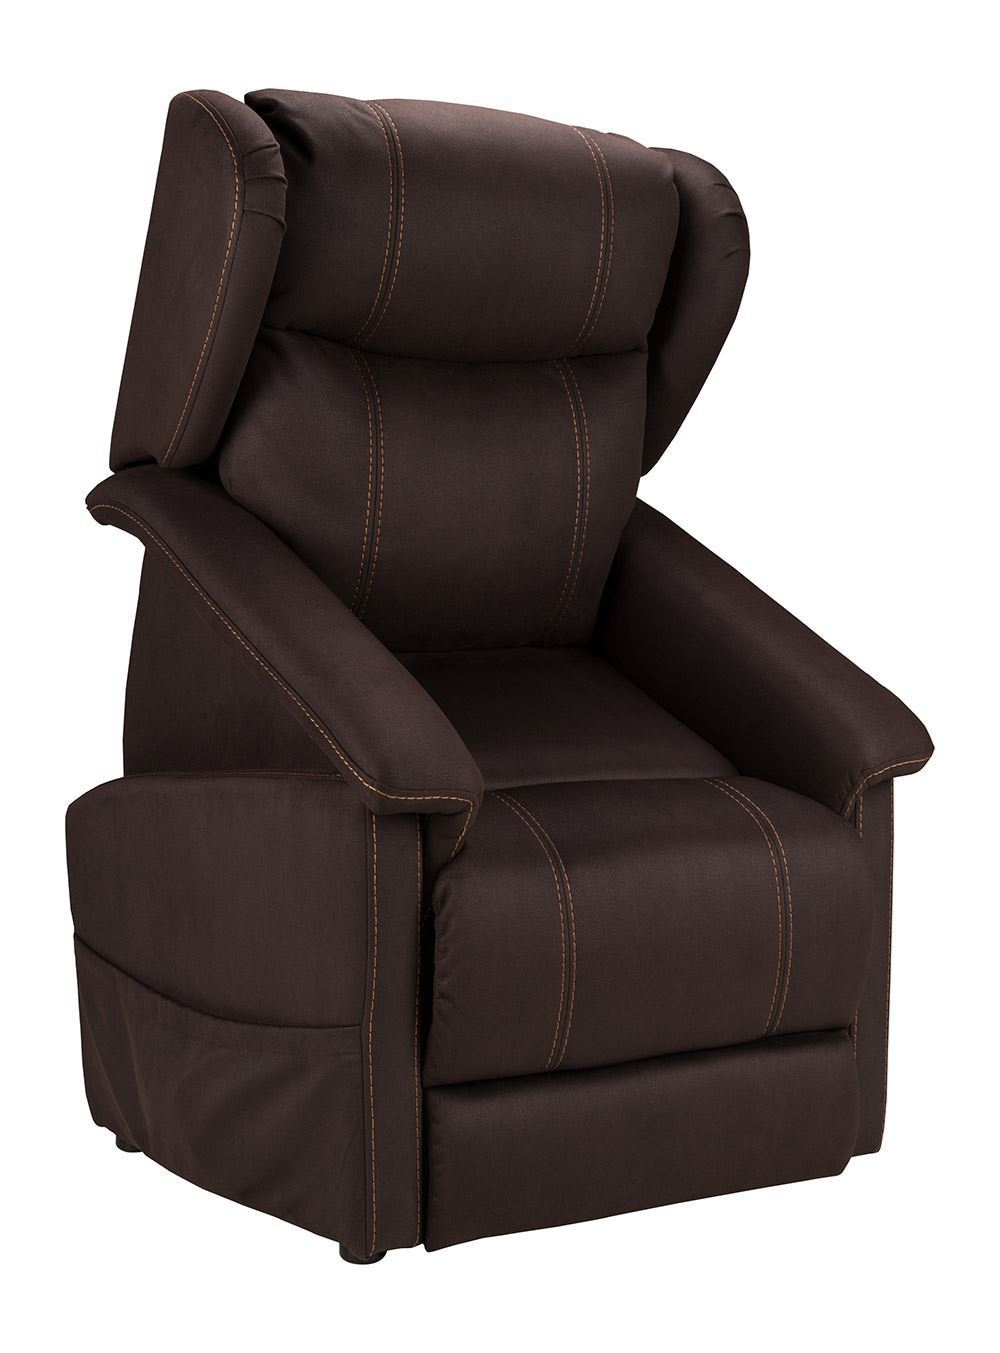 Picture of Stonewash Fudge Power Lift Recliner